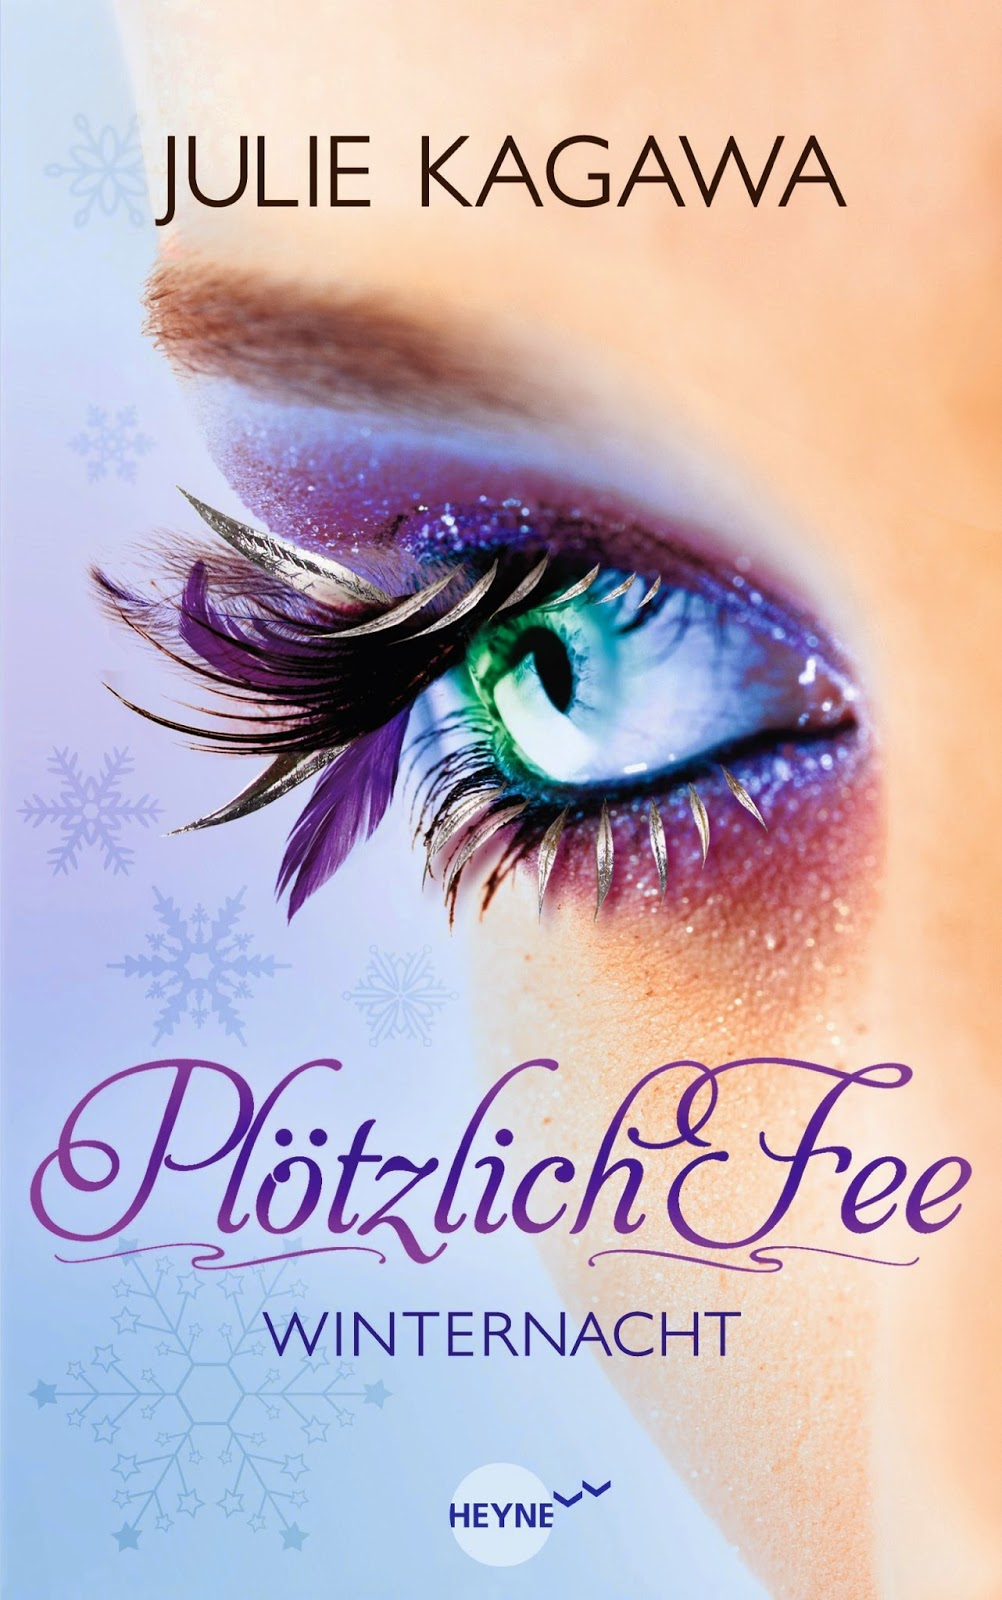 https://www.buchhaus-sternverlag.de/shop/action/productDetails/14858709/julie_kagawa_ploetzlich_fee_02_winternacht_3453267222.html?aUrl=90007403&searchId=0